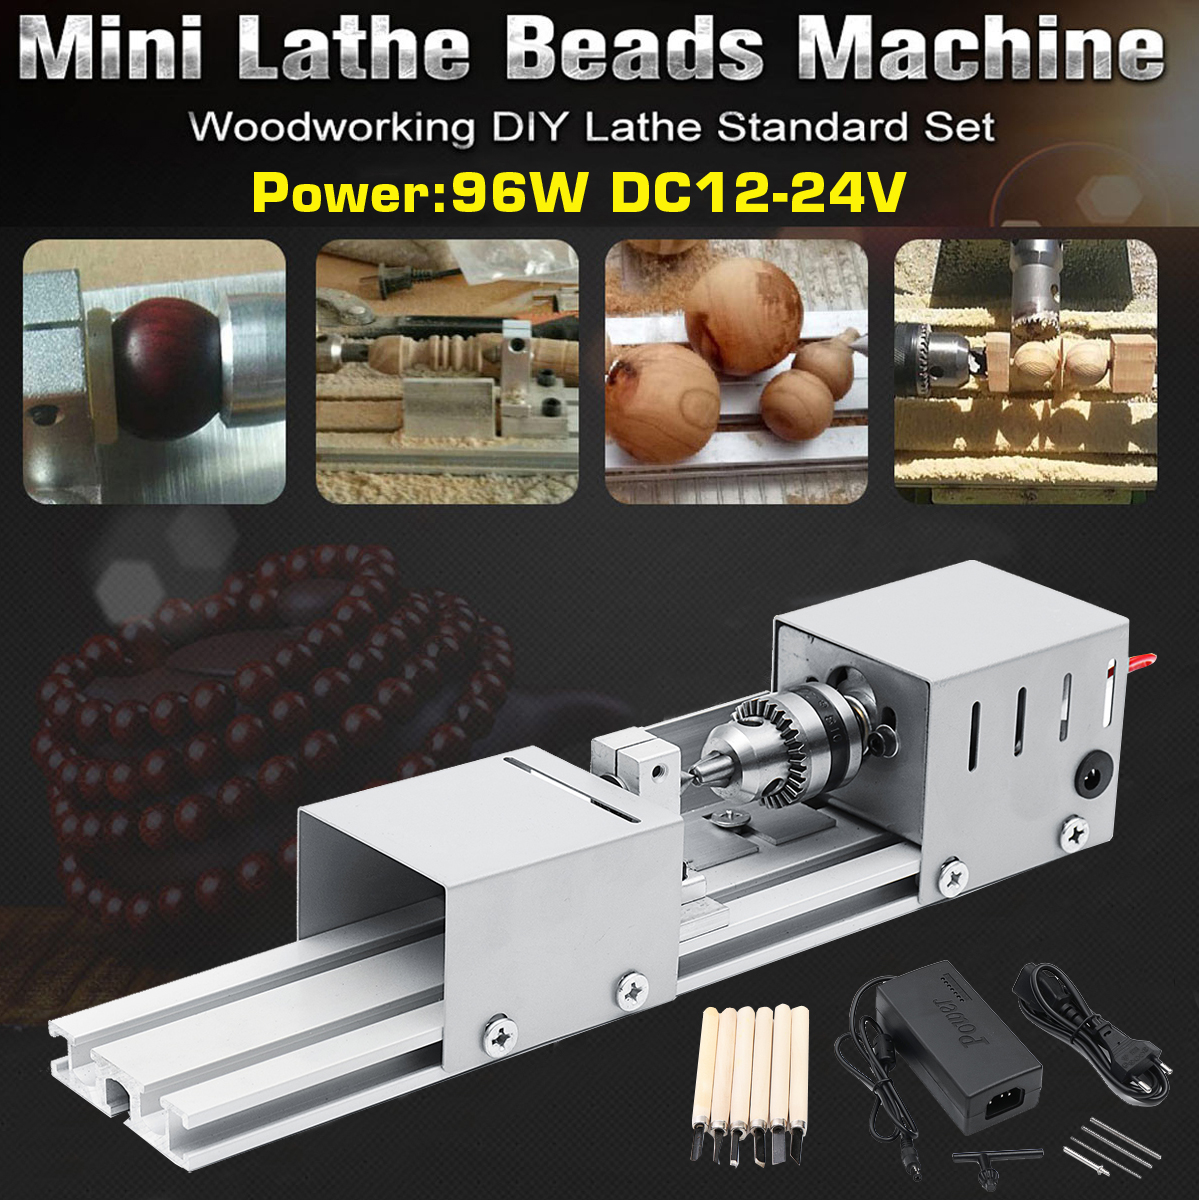 New 96W Mini Lathe Beads Machine Woodwork DIY Lathe Standard Set with Power DC12-24V carving cutter wolike mini lathe beads machine woodwork diy lathe standard set with power dc12 24v carving cutter wood lathe